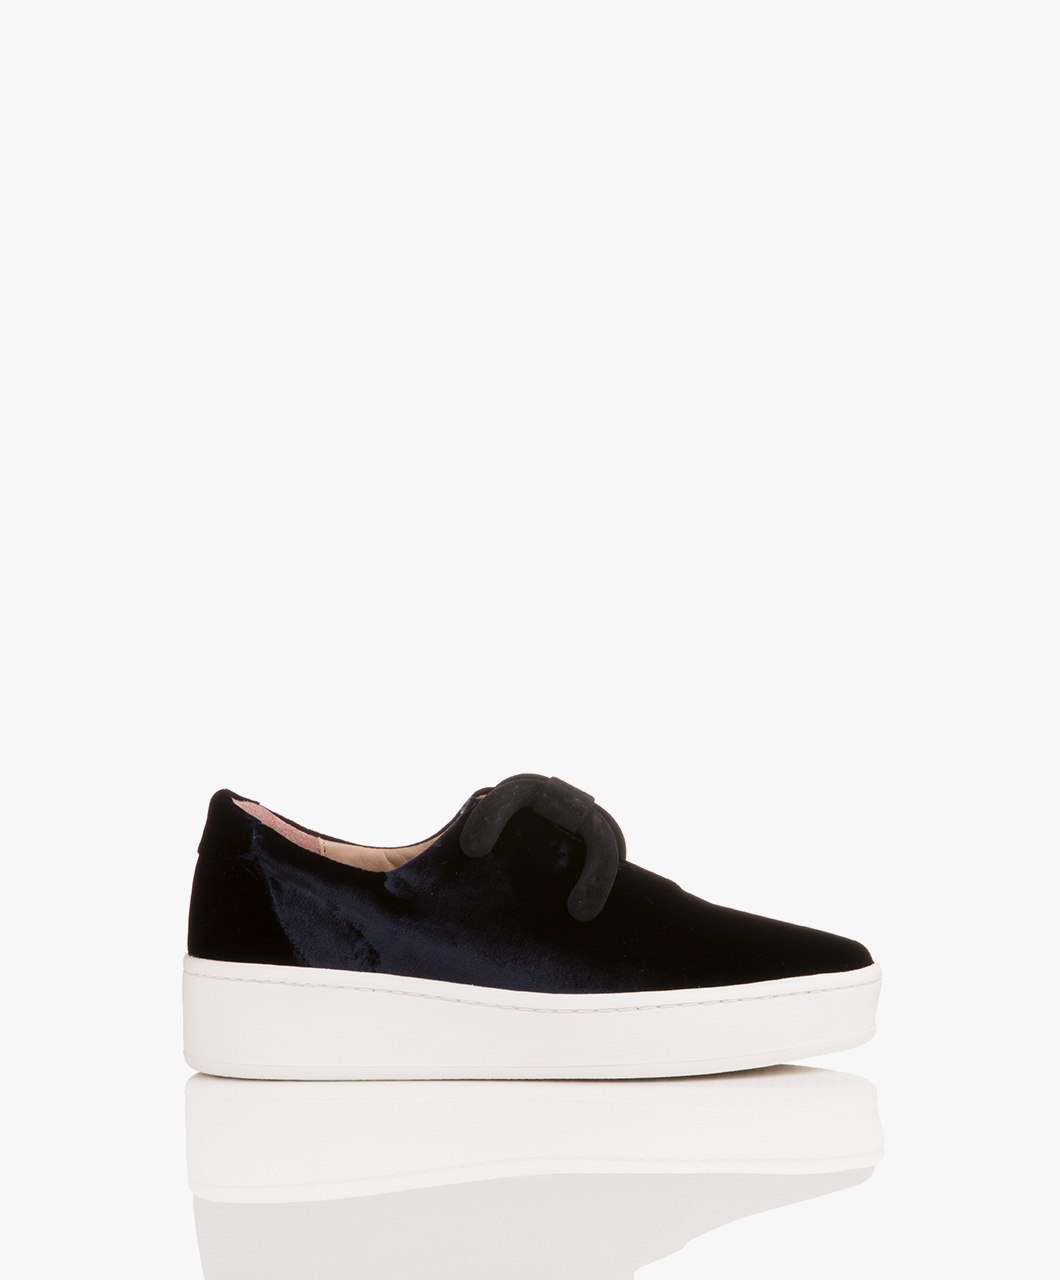 Immagine di An Hour And A Shower Sneakers Knot Low in Velvet Navy